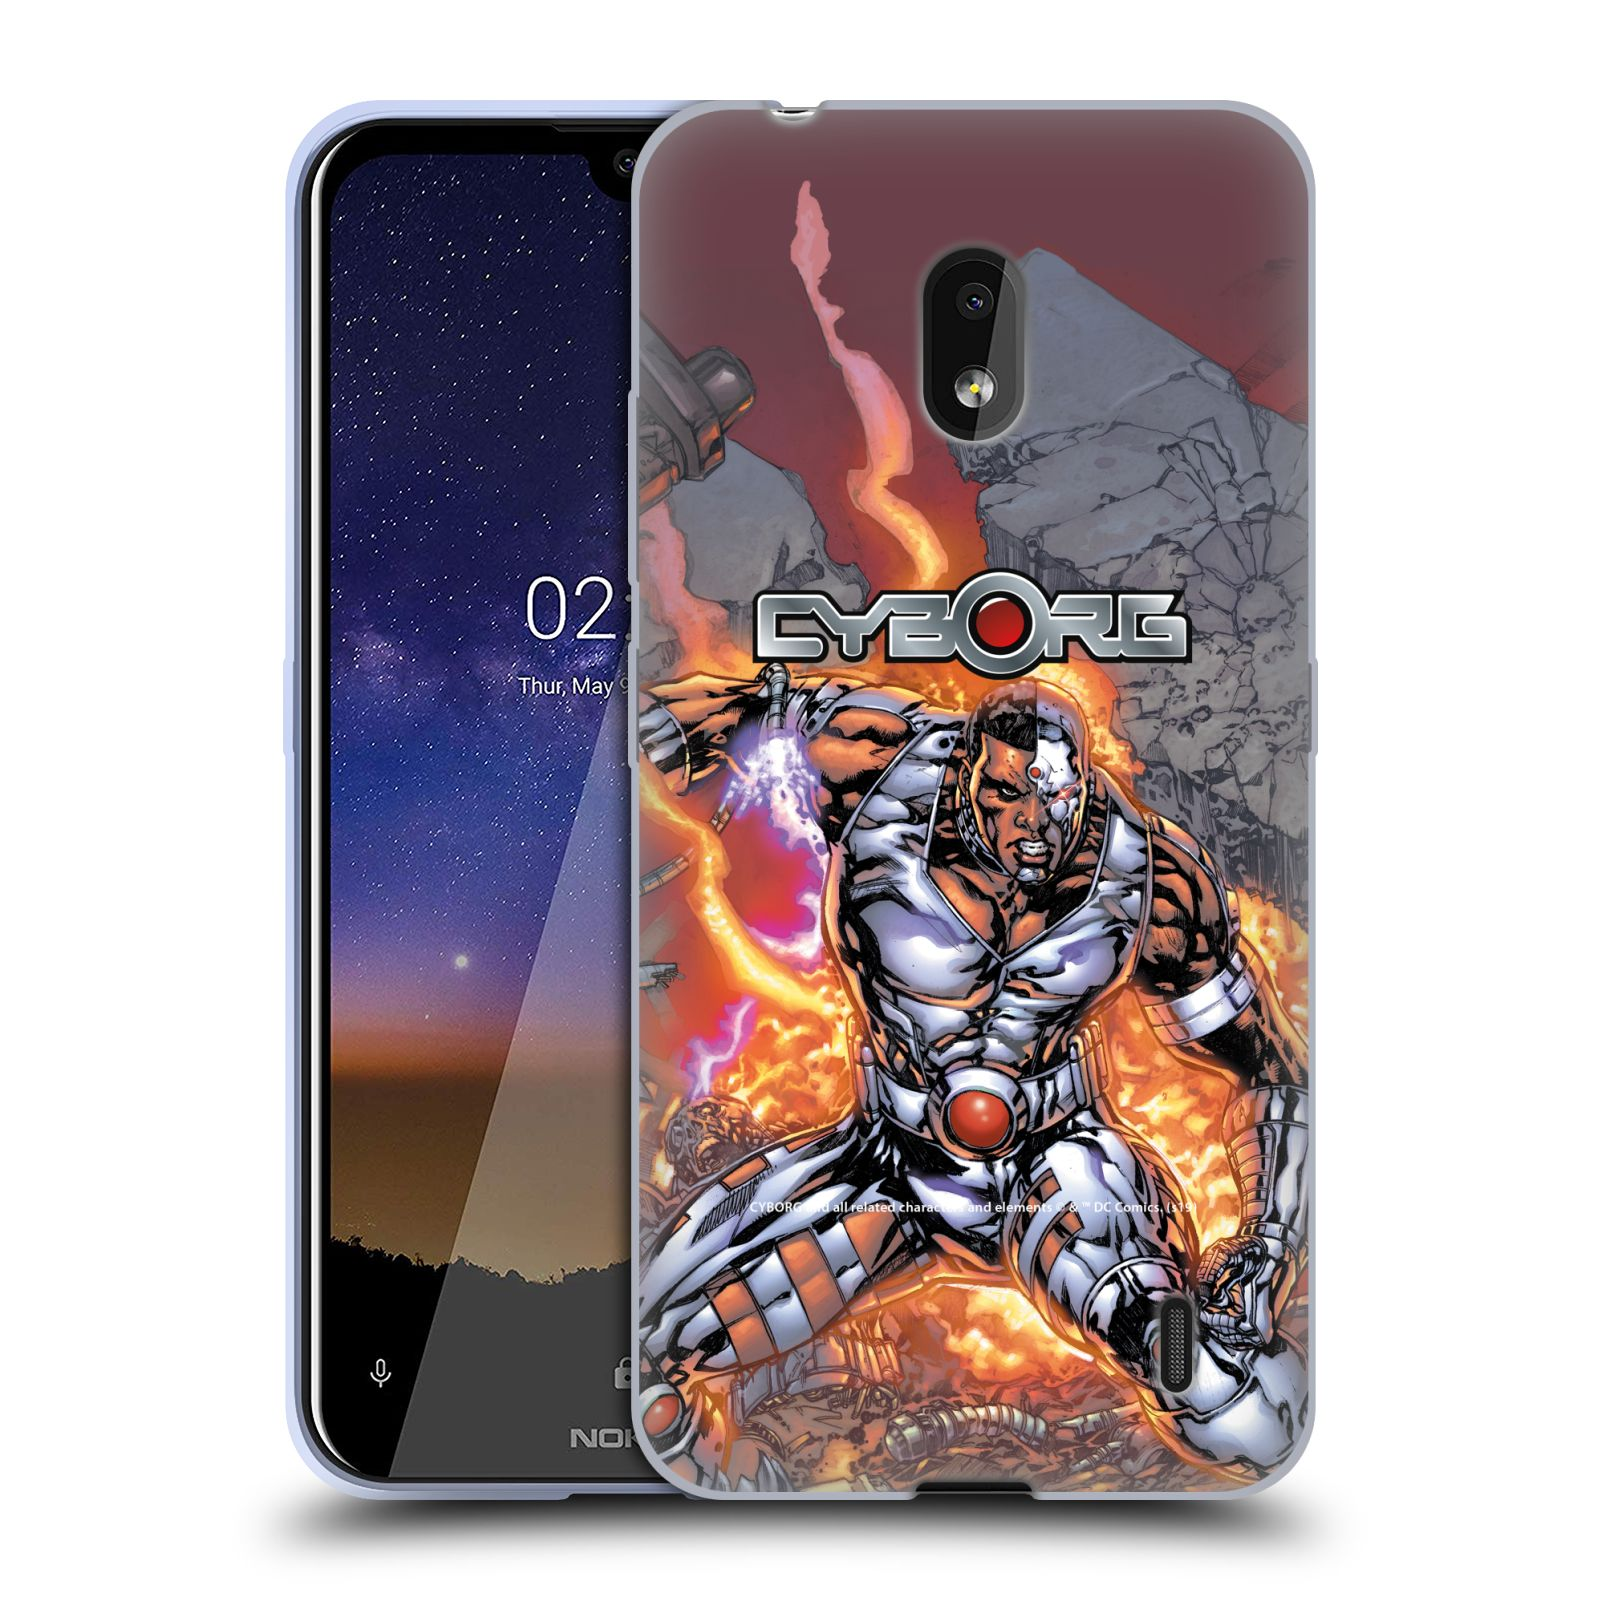 Official Cyborg DC Comics Fast Fashion Cover Gel Case for Nokia 2.2